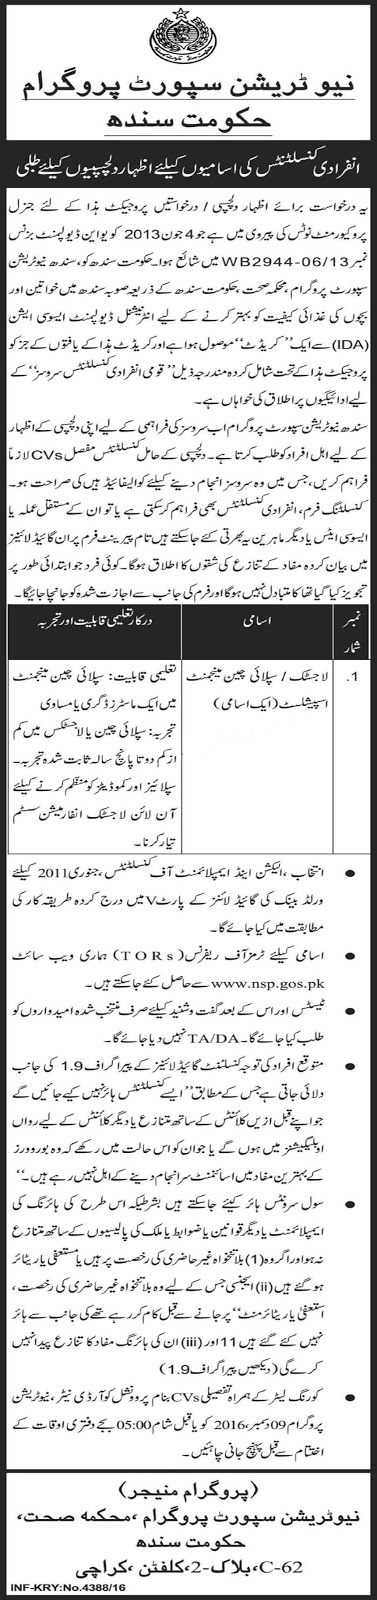 Nutrition Support Program Sindh Govt Jobs